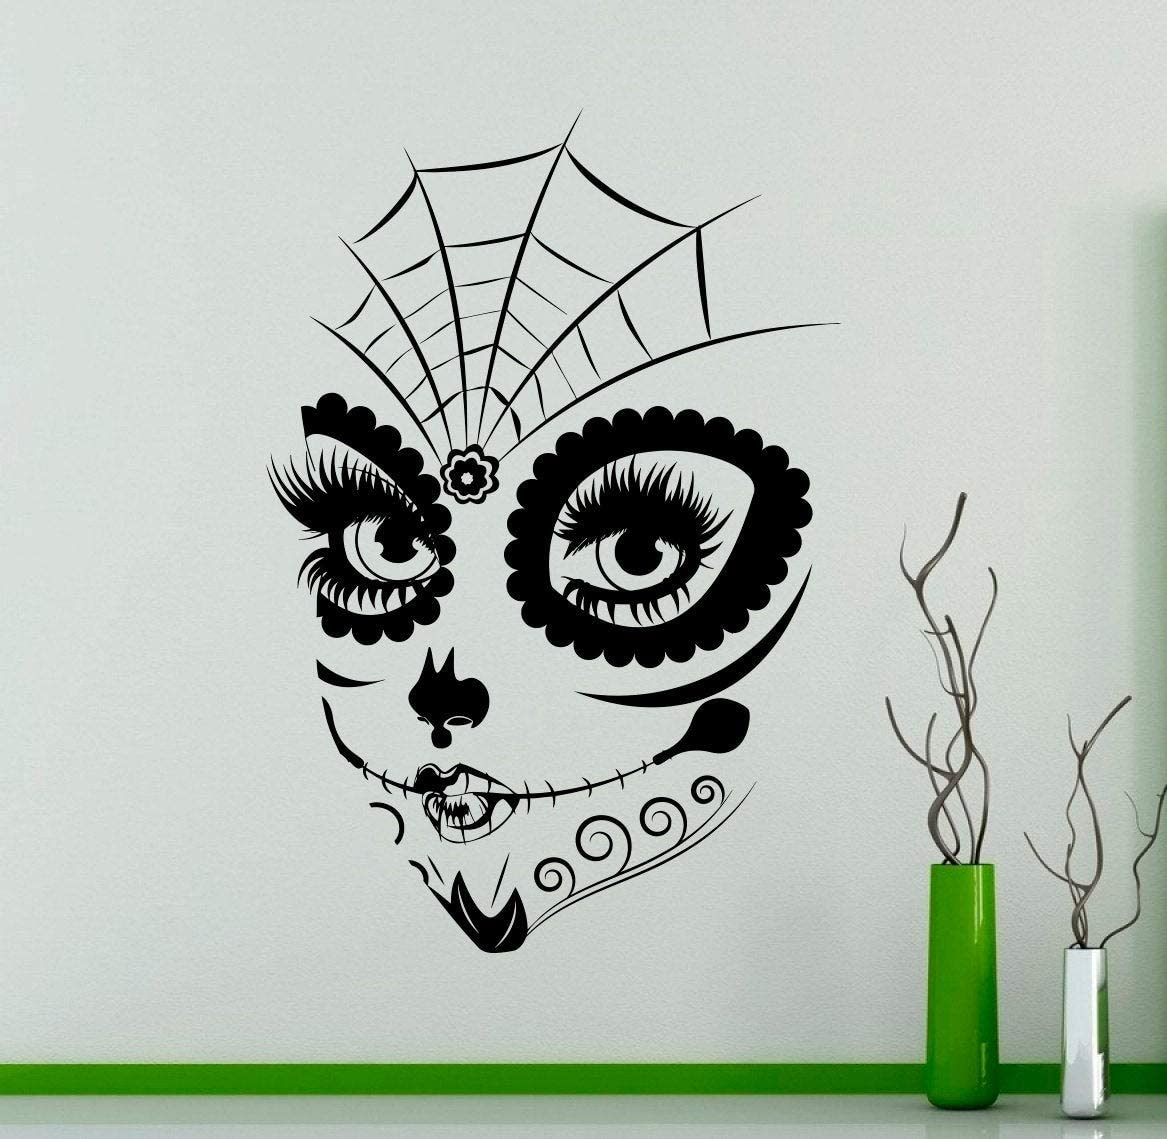 Place Sugar Skull Girl Face Wall Vinyl Decal Sticker Make Up Home Art Decor Living Room Murals Housewares - Removable Design Made in USA - 12x15 Inch